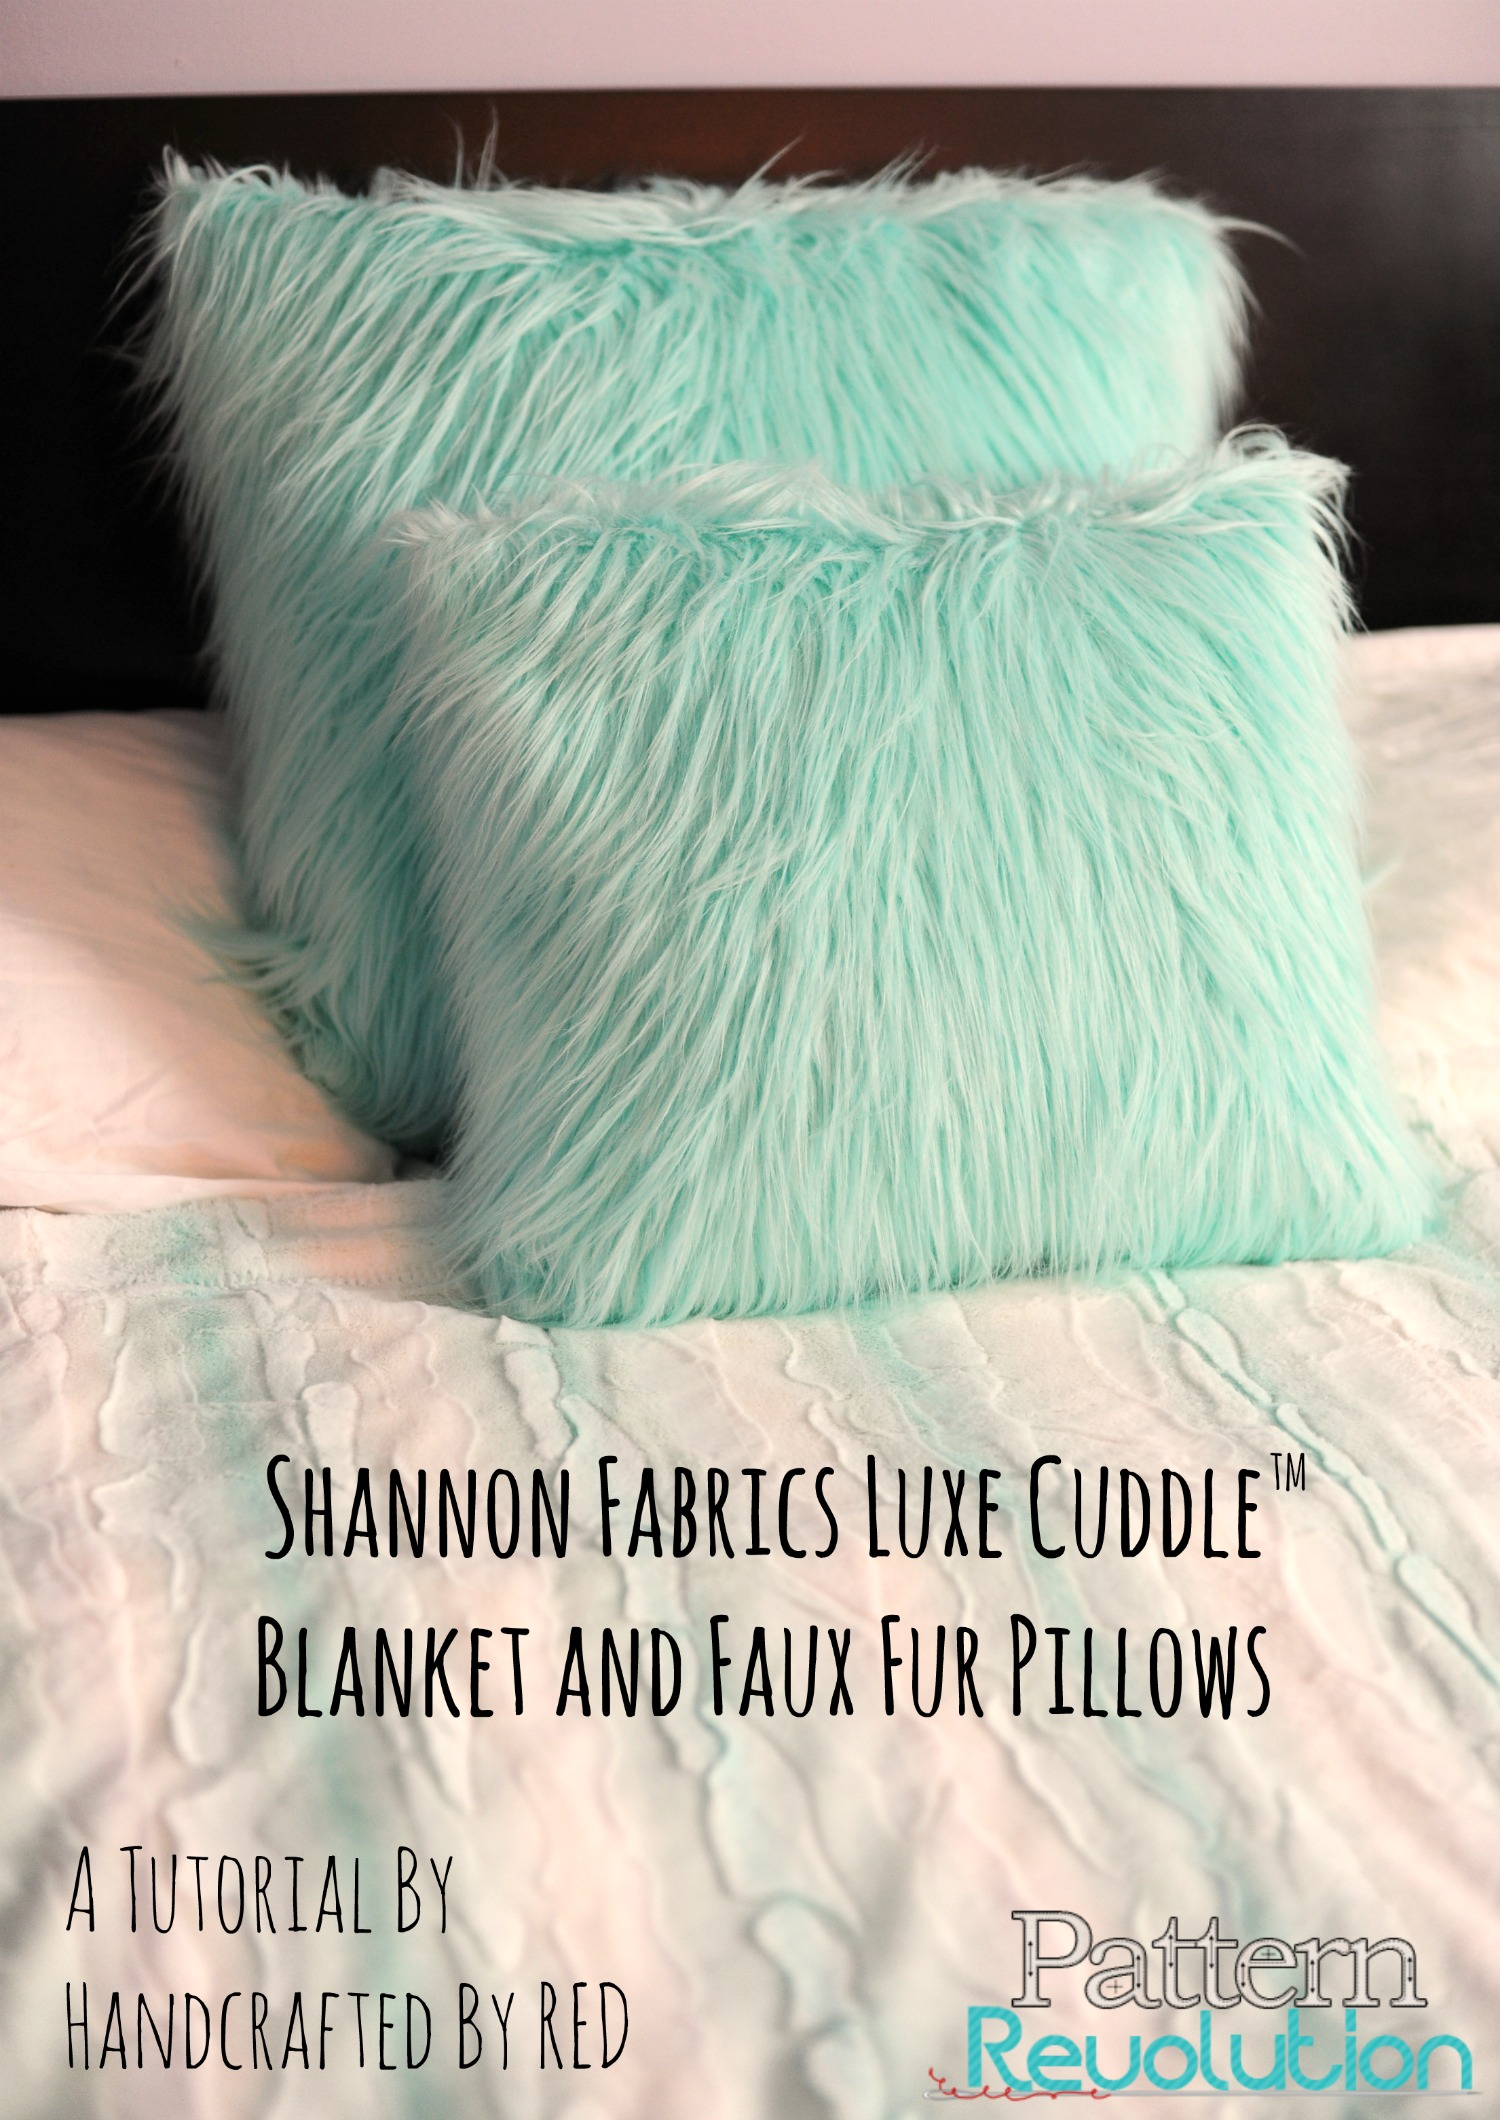 How To Make Pillows And A Blanket With Shannon Fabrics Pattern